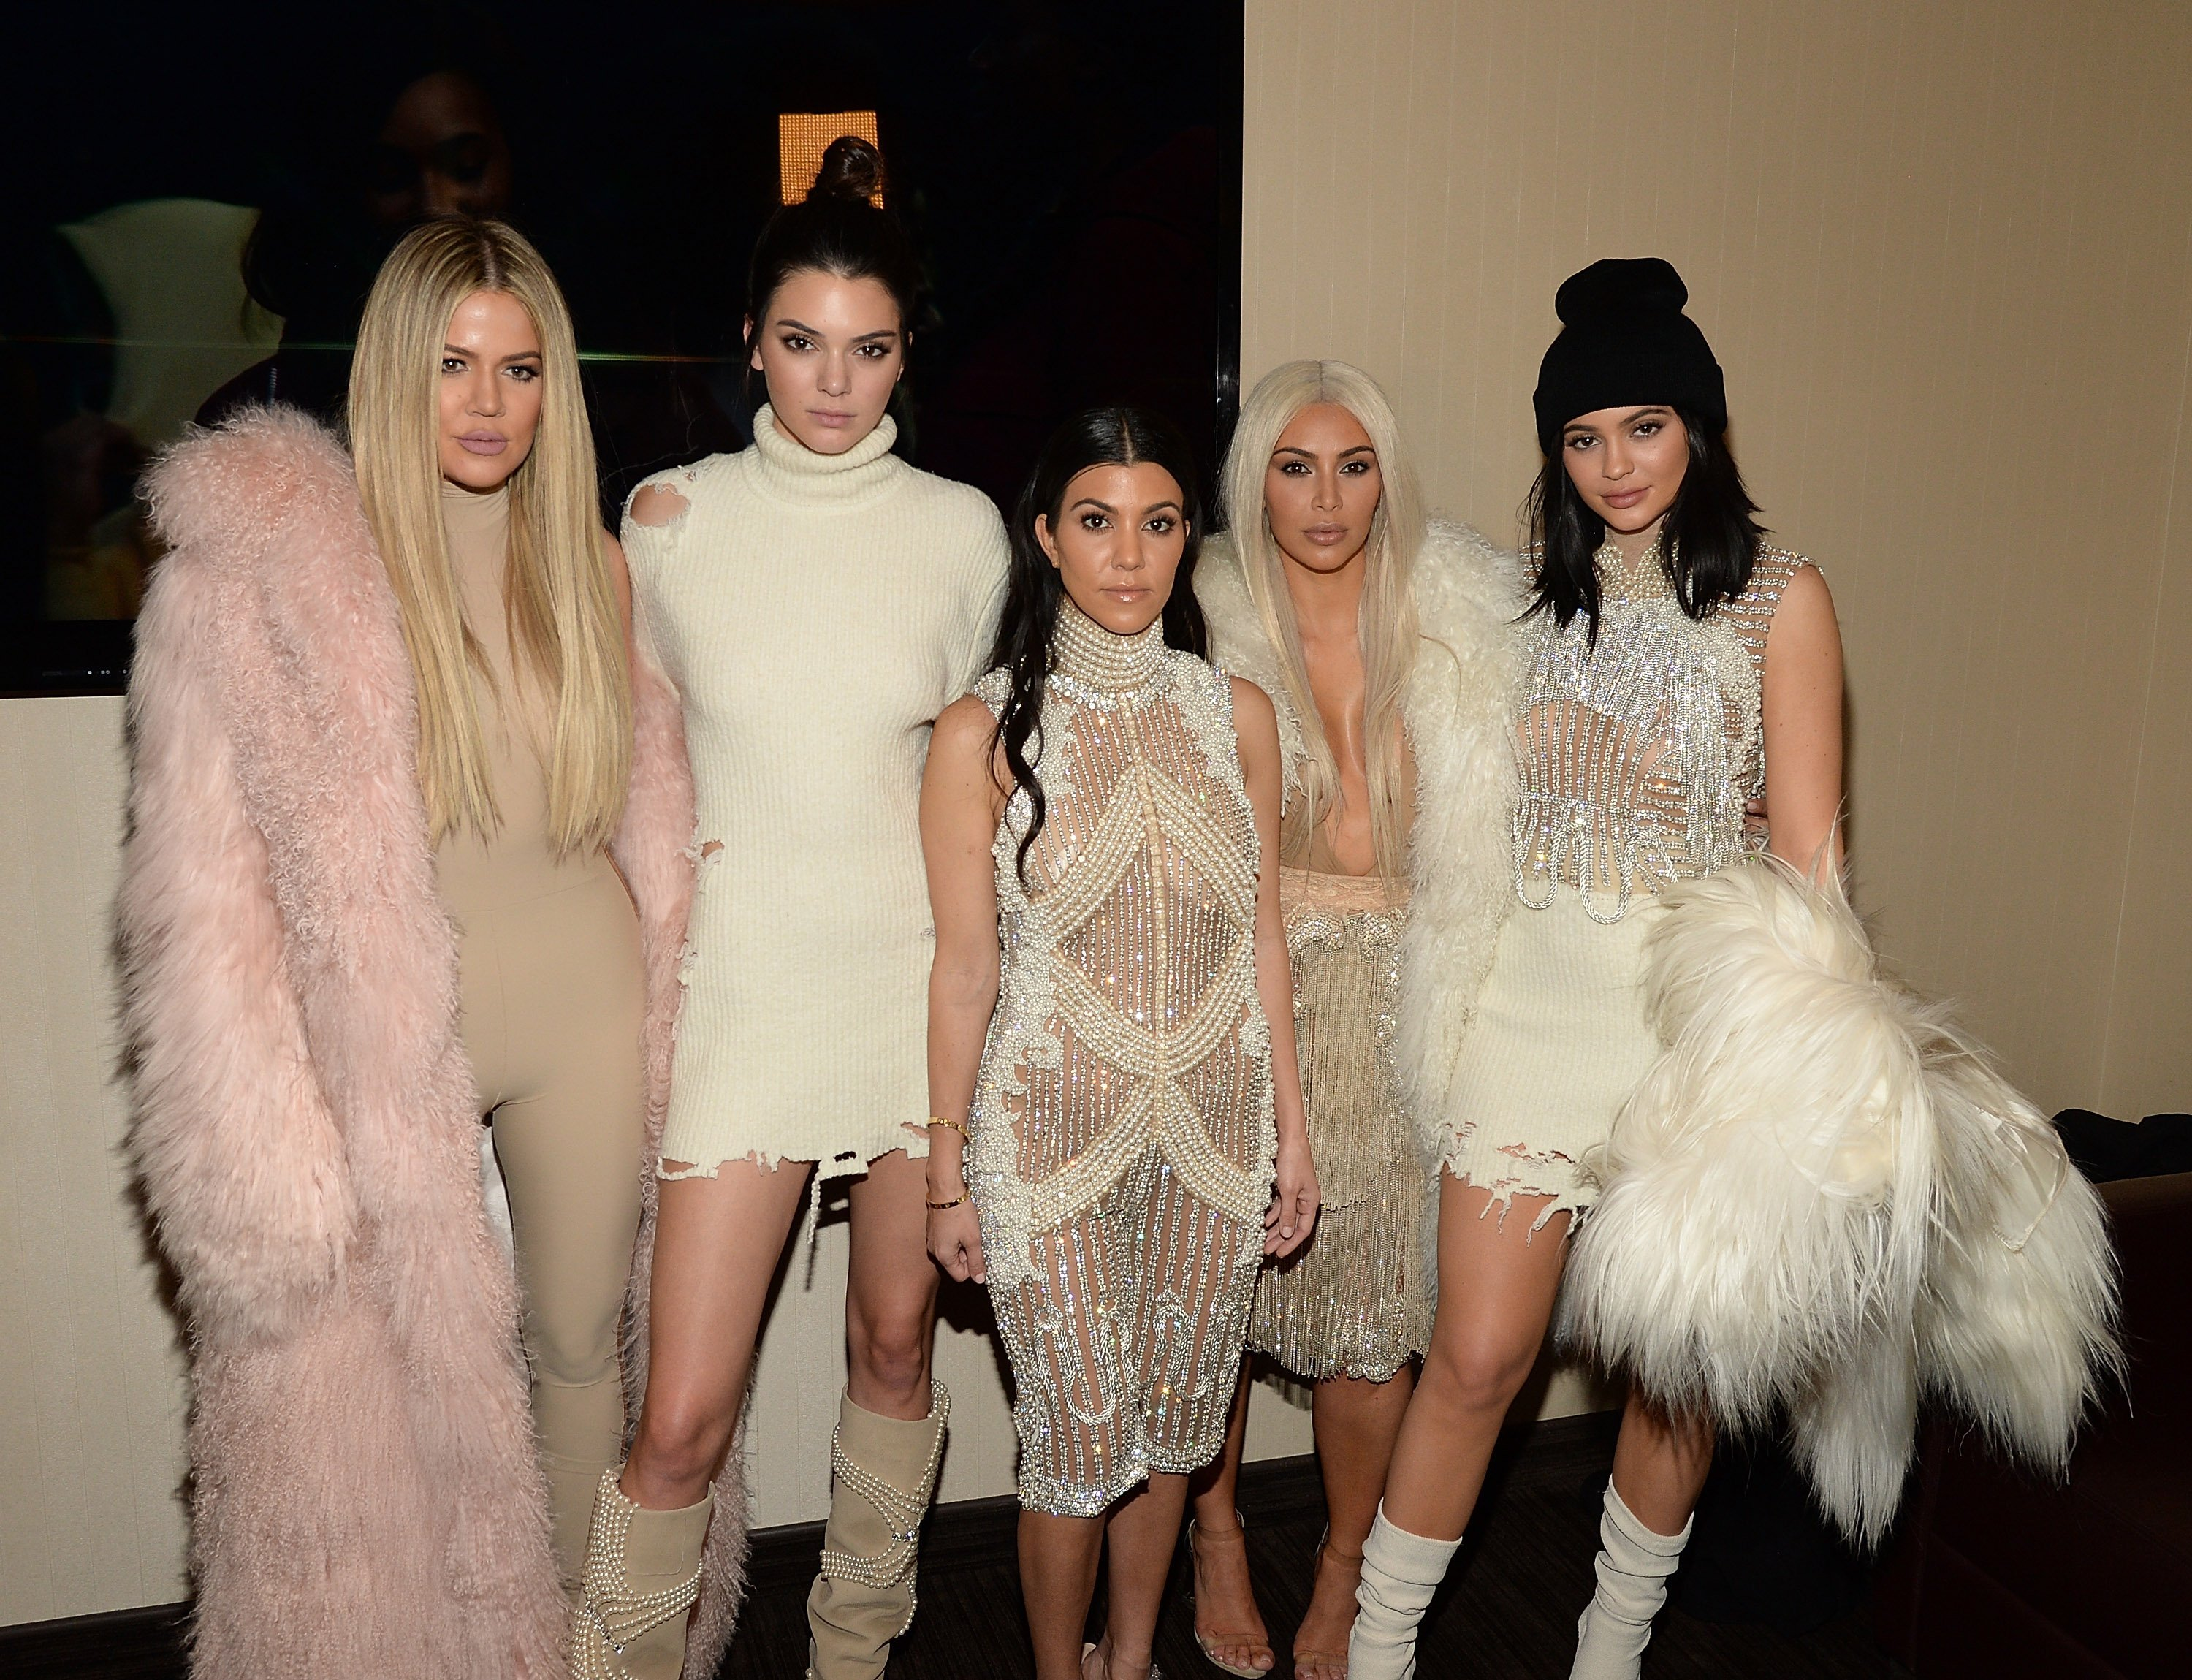 Khloe Kardashian, Kendall Jenner, Kourtney Kardashian, Kim Kardashian West and Kylie Jenner attend Kanye West Yeezy Season 3 at Madison Square Garden on February 11, 2016, in New York City. | Source: Getty Images.